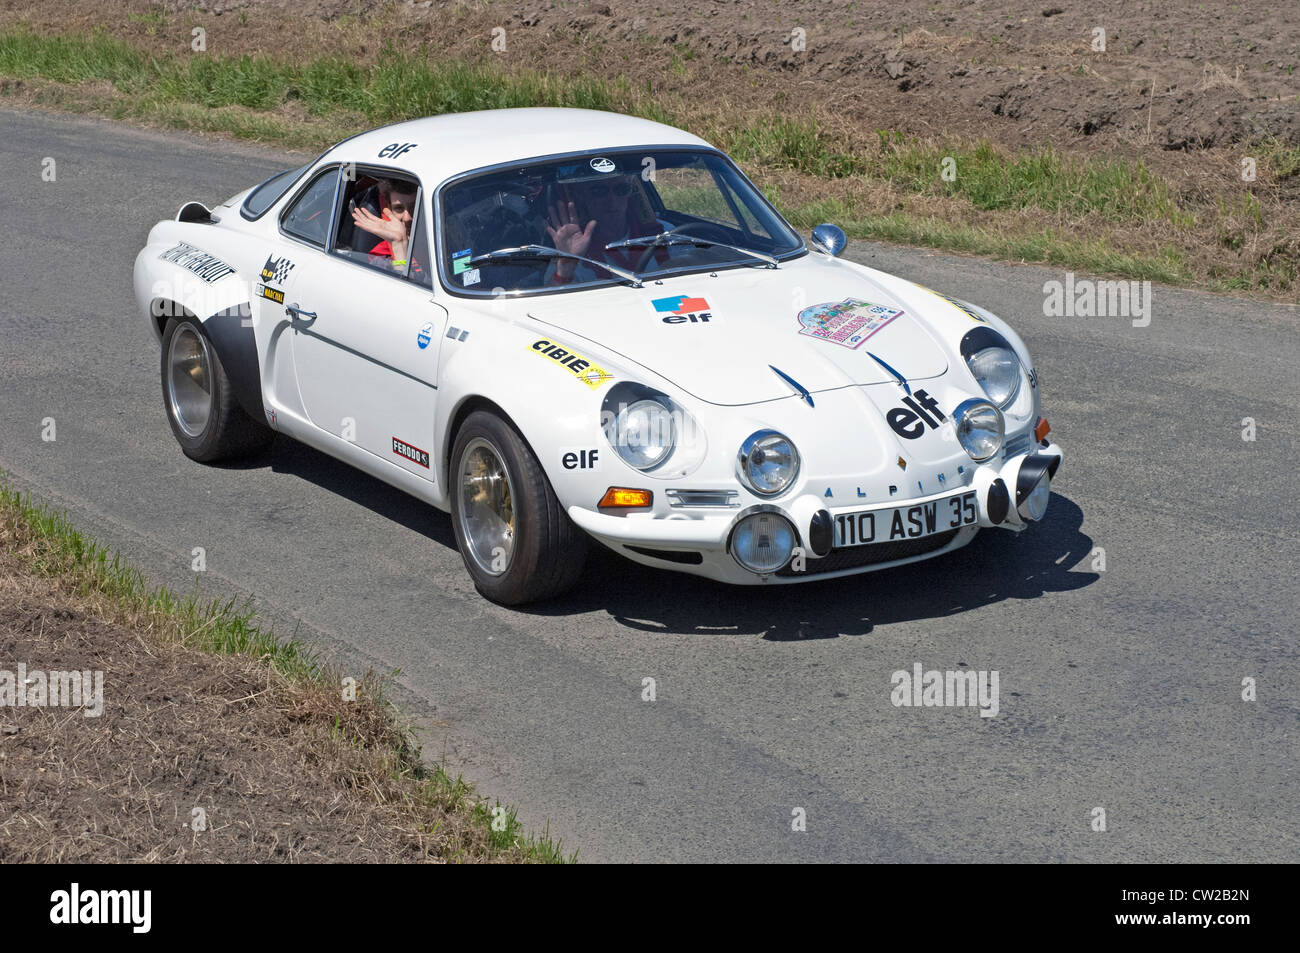 renault alpine a110 stock photos renault alpine a110 stock images alamy. Black Bedroom Furniture Sets. Home Design Ideas